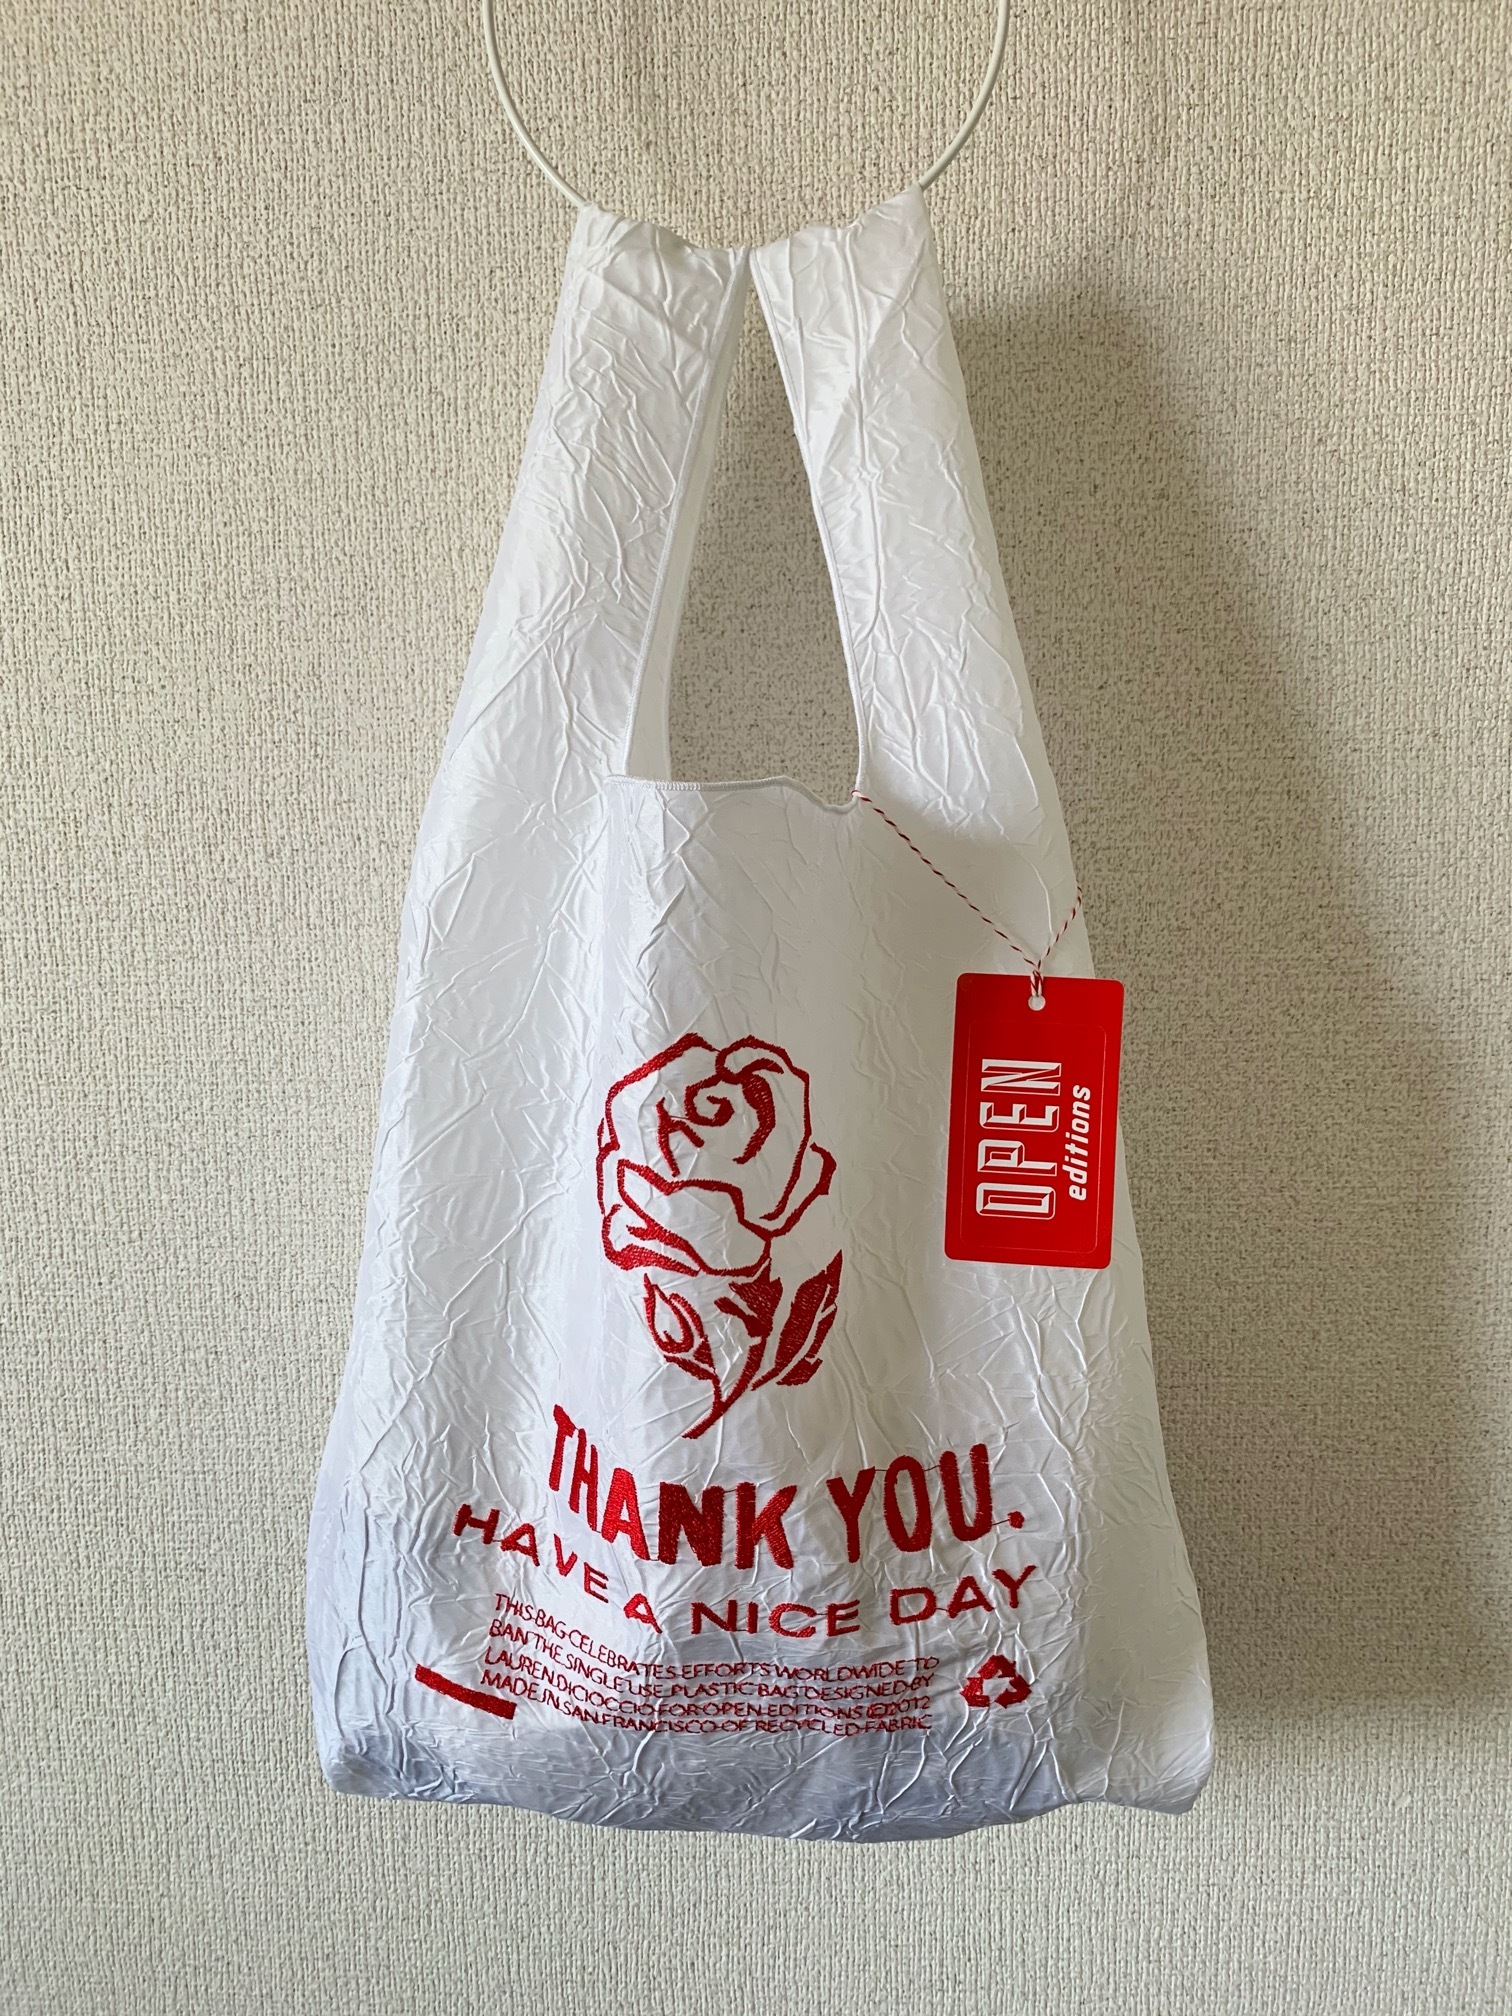 【OPEN EDITIONS】THANK YOU TOTE エコバッグ/ ROSE White